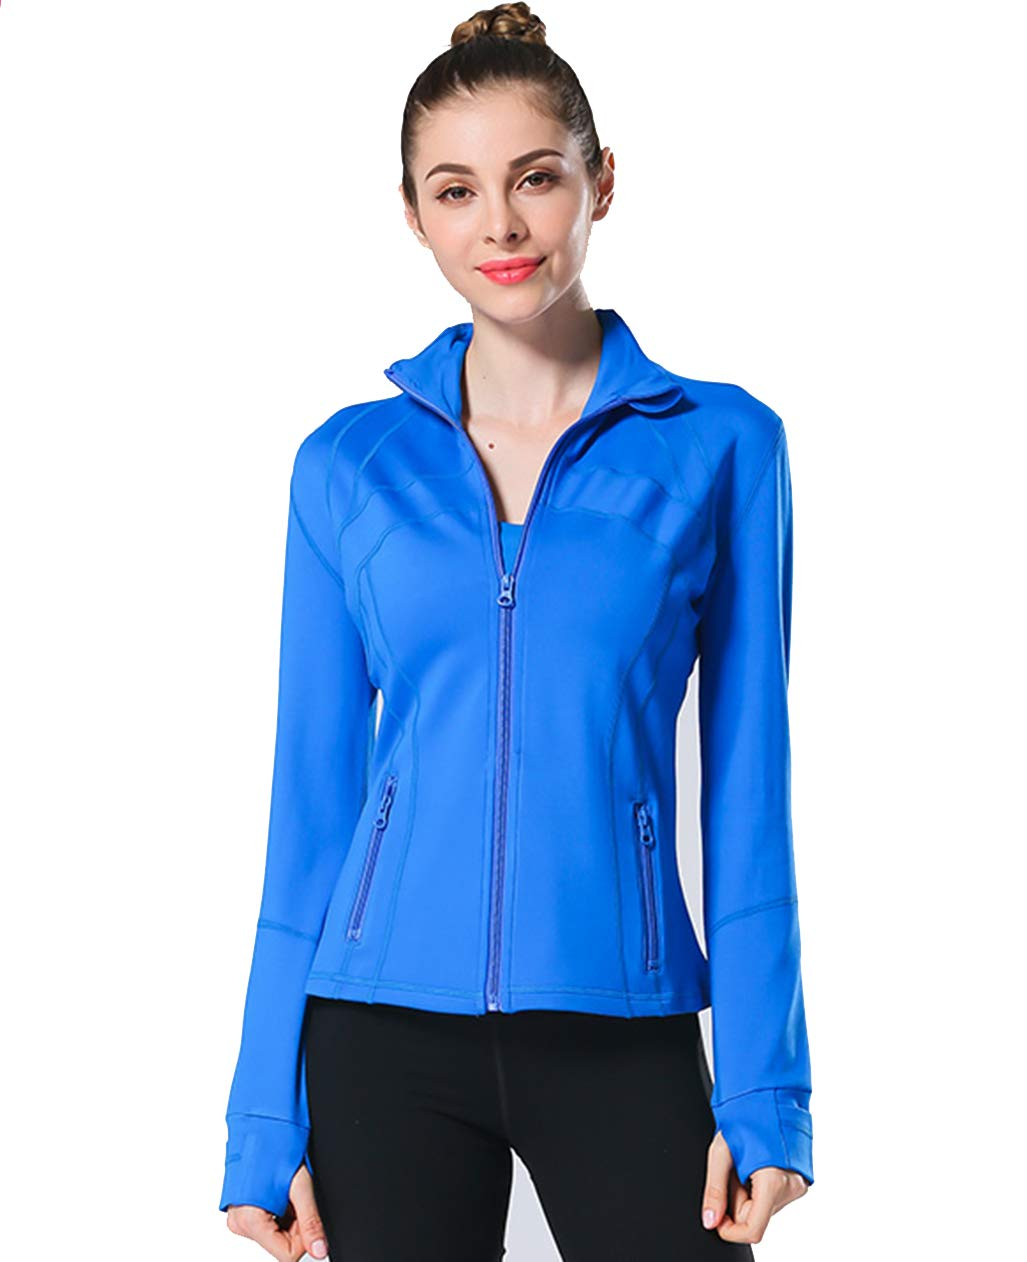 UDIY Women's Stretchy Performance Full-Zip Workout Yoga Sports Coats with Thumb Holes Blue by UDIY